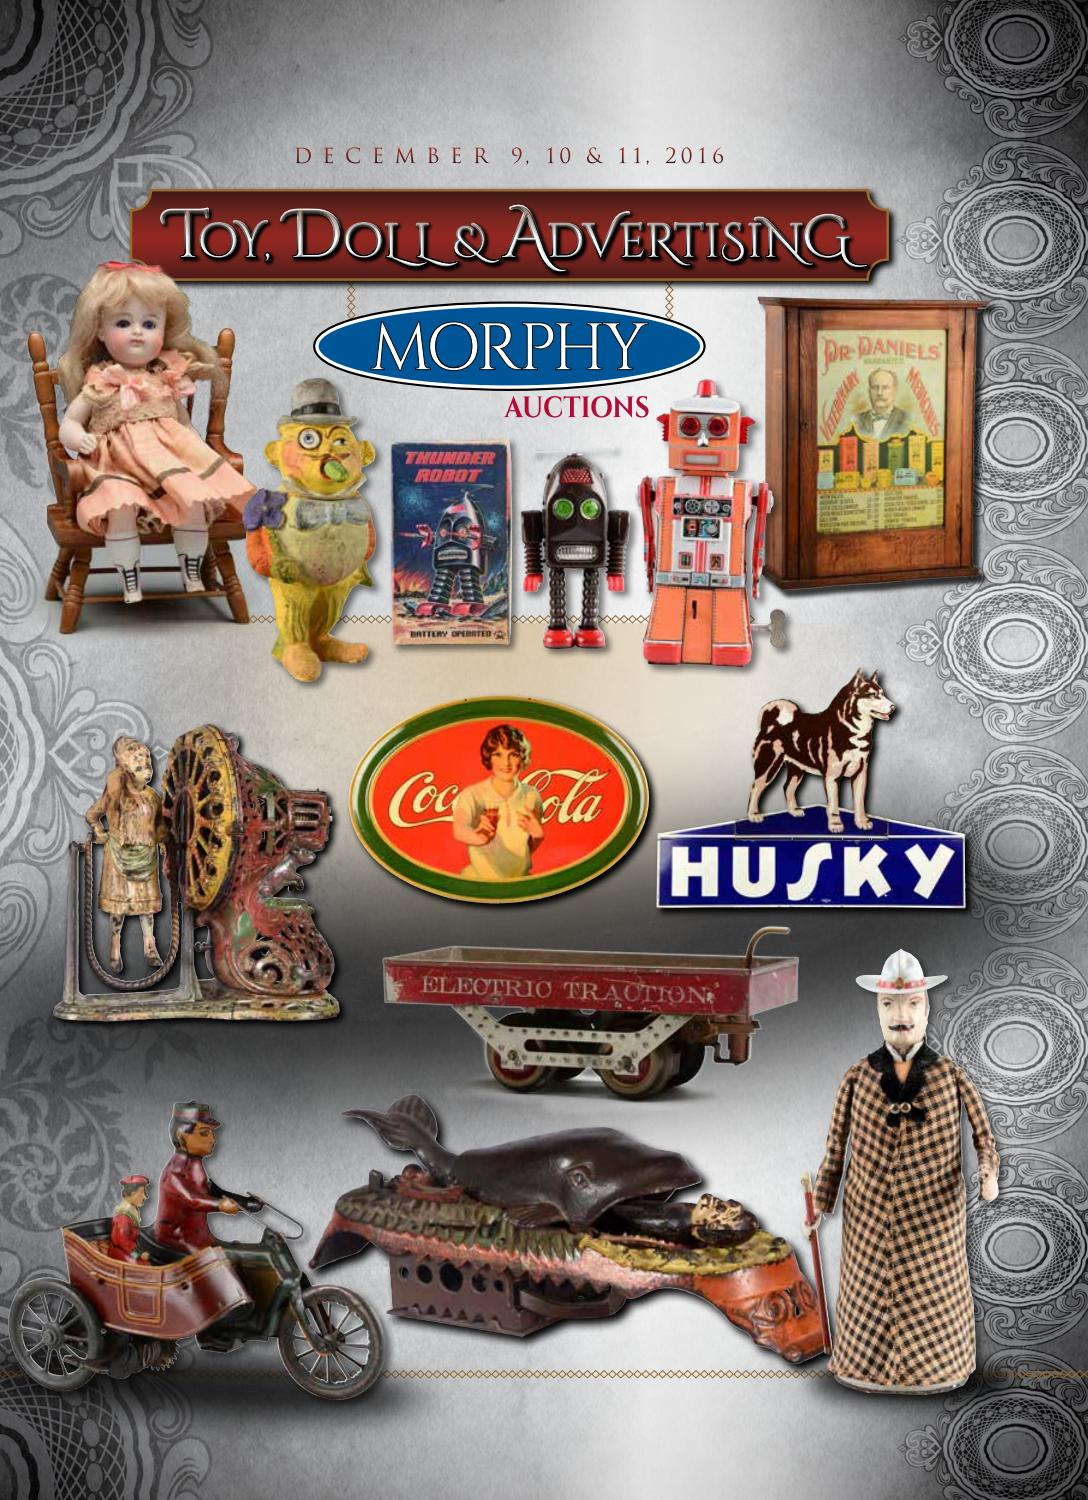 2016 december 9 11 toy, doll, \u0026 advertising by morphy auctions issuuLe Specs Halfmoon Magie Schwarz P 794 #18